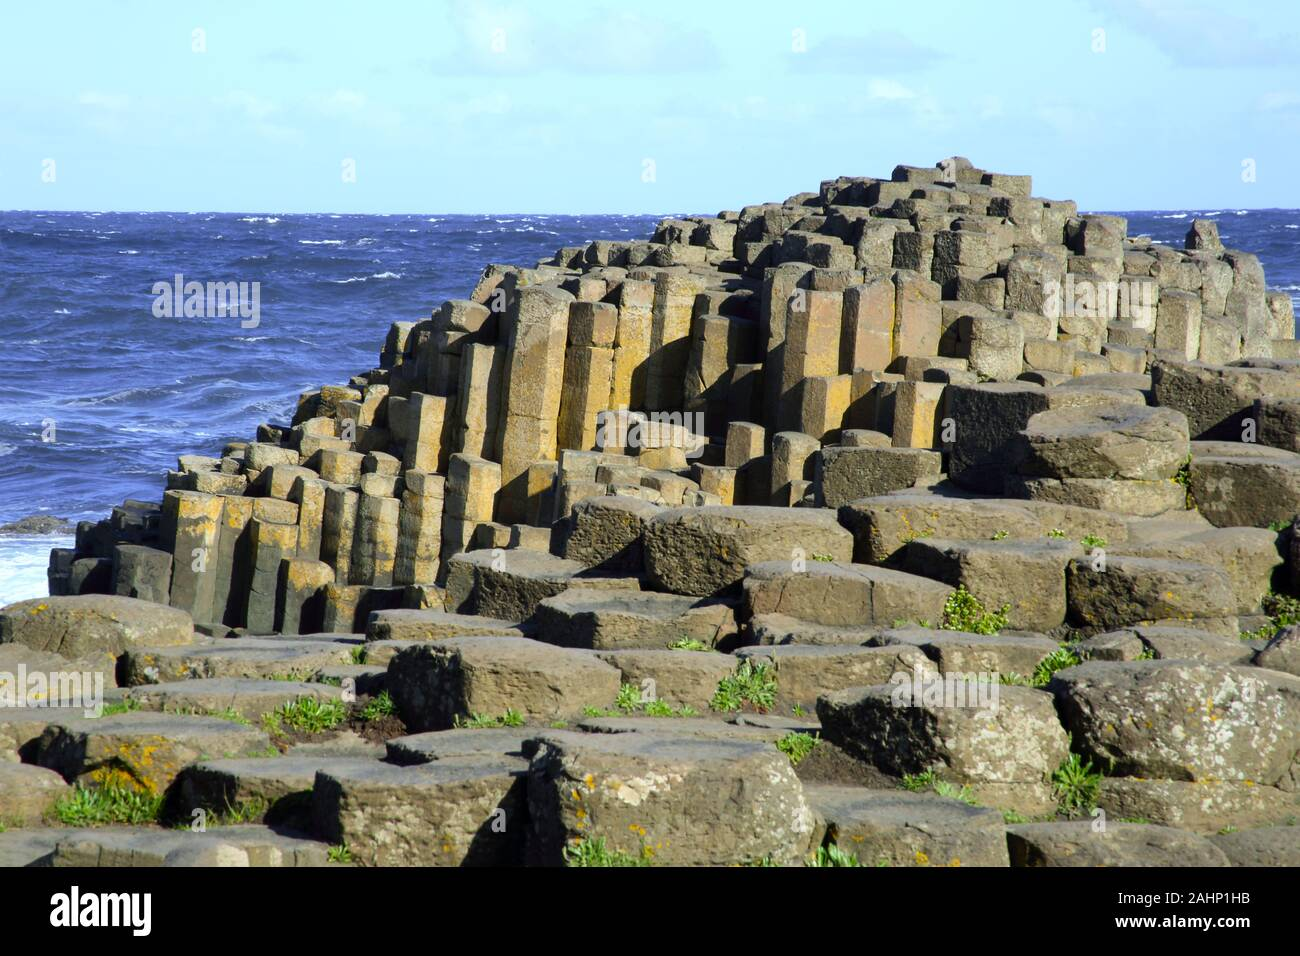 Dramatic coastline of stepping stones and basalt columns of the Giant's Causeway, County Antrim, Northern Ireland, UK, Europe. Stock Photo